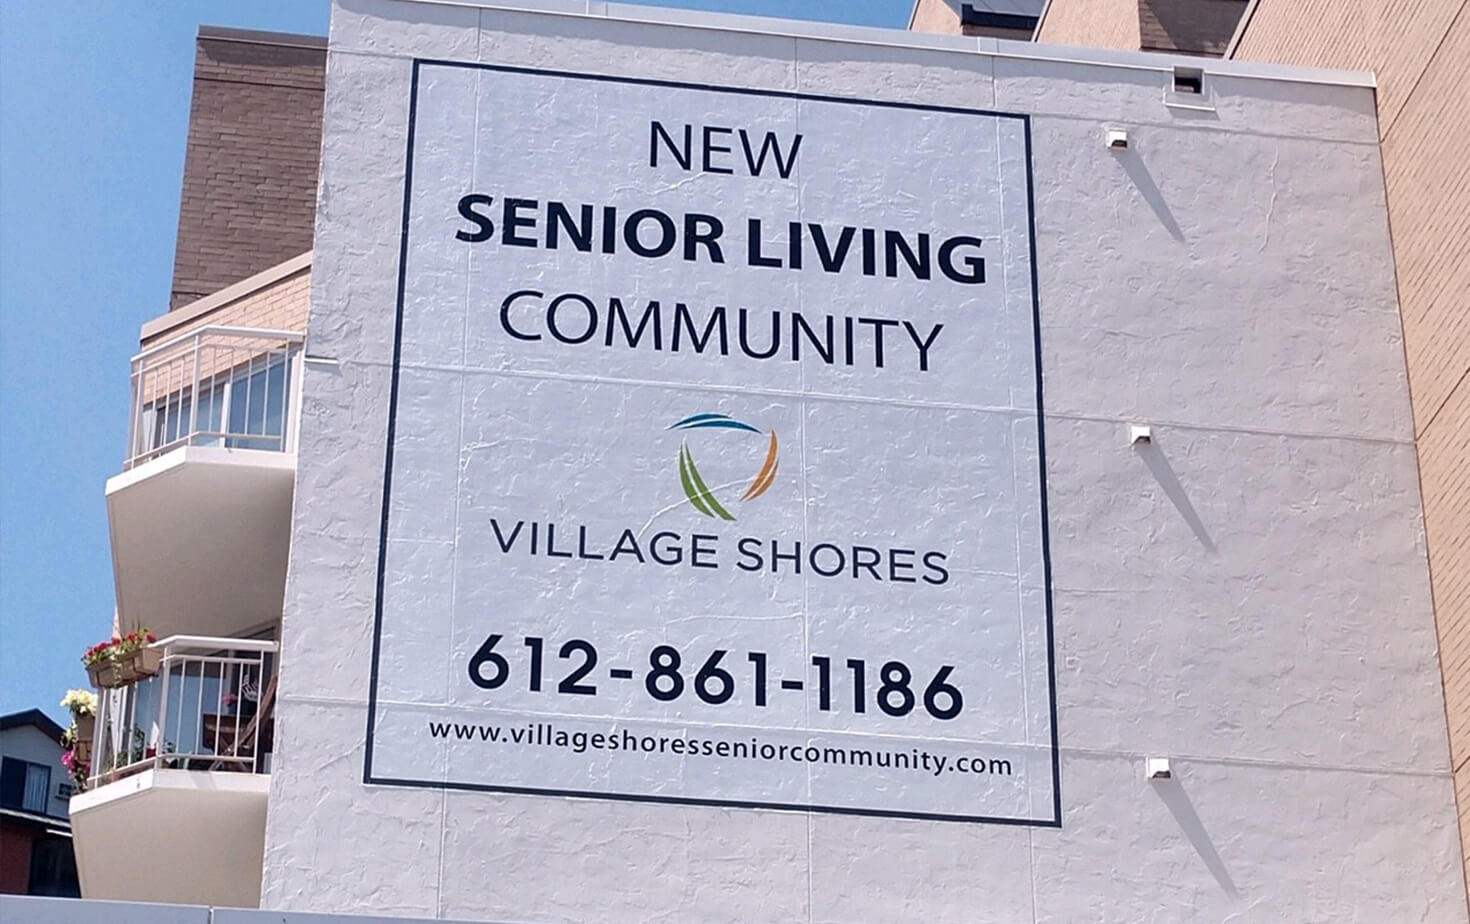 Village Shores Exterior Wall Mural on Side of Building